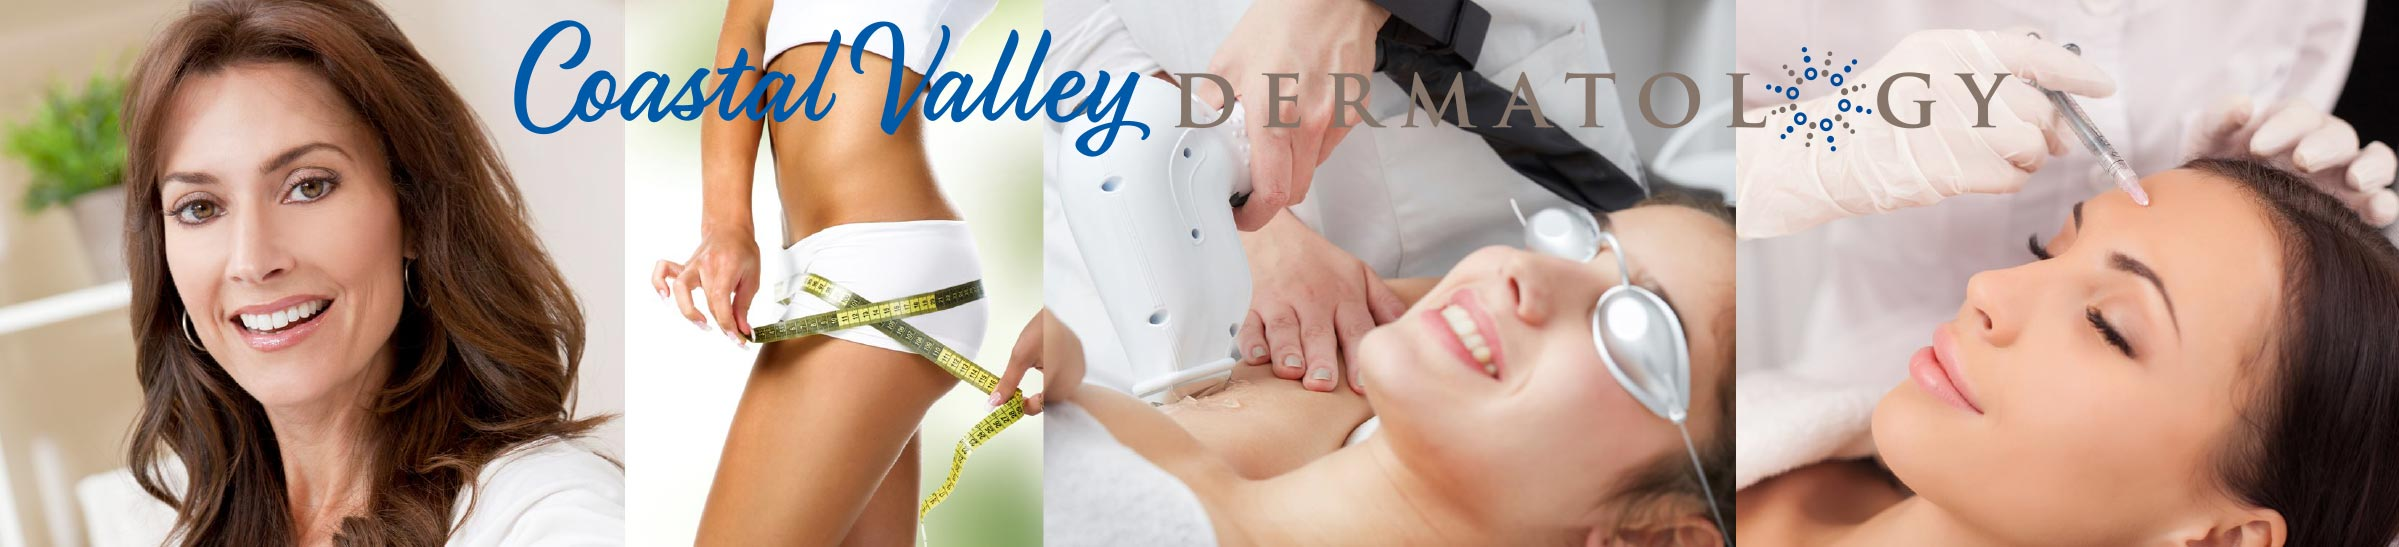 coastal-valley-dermatology-carmel-cosmetic-aesthetic-treatments-photo